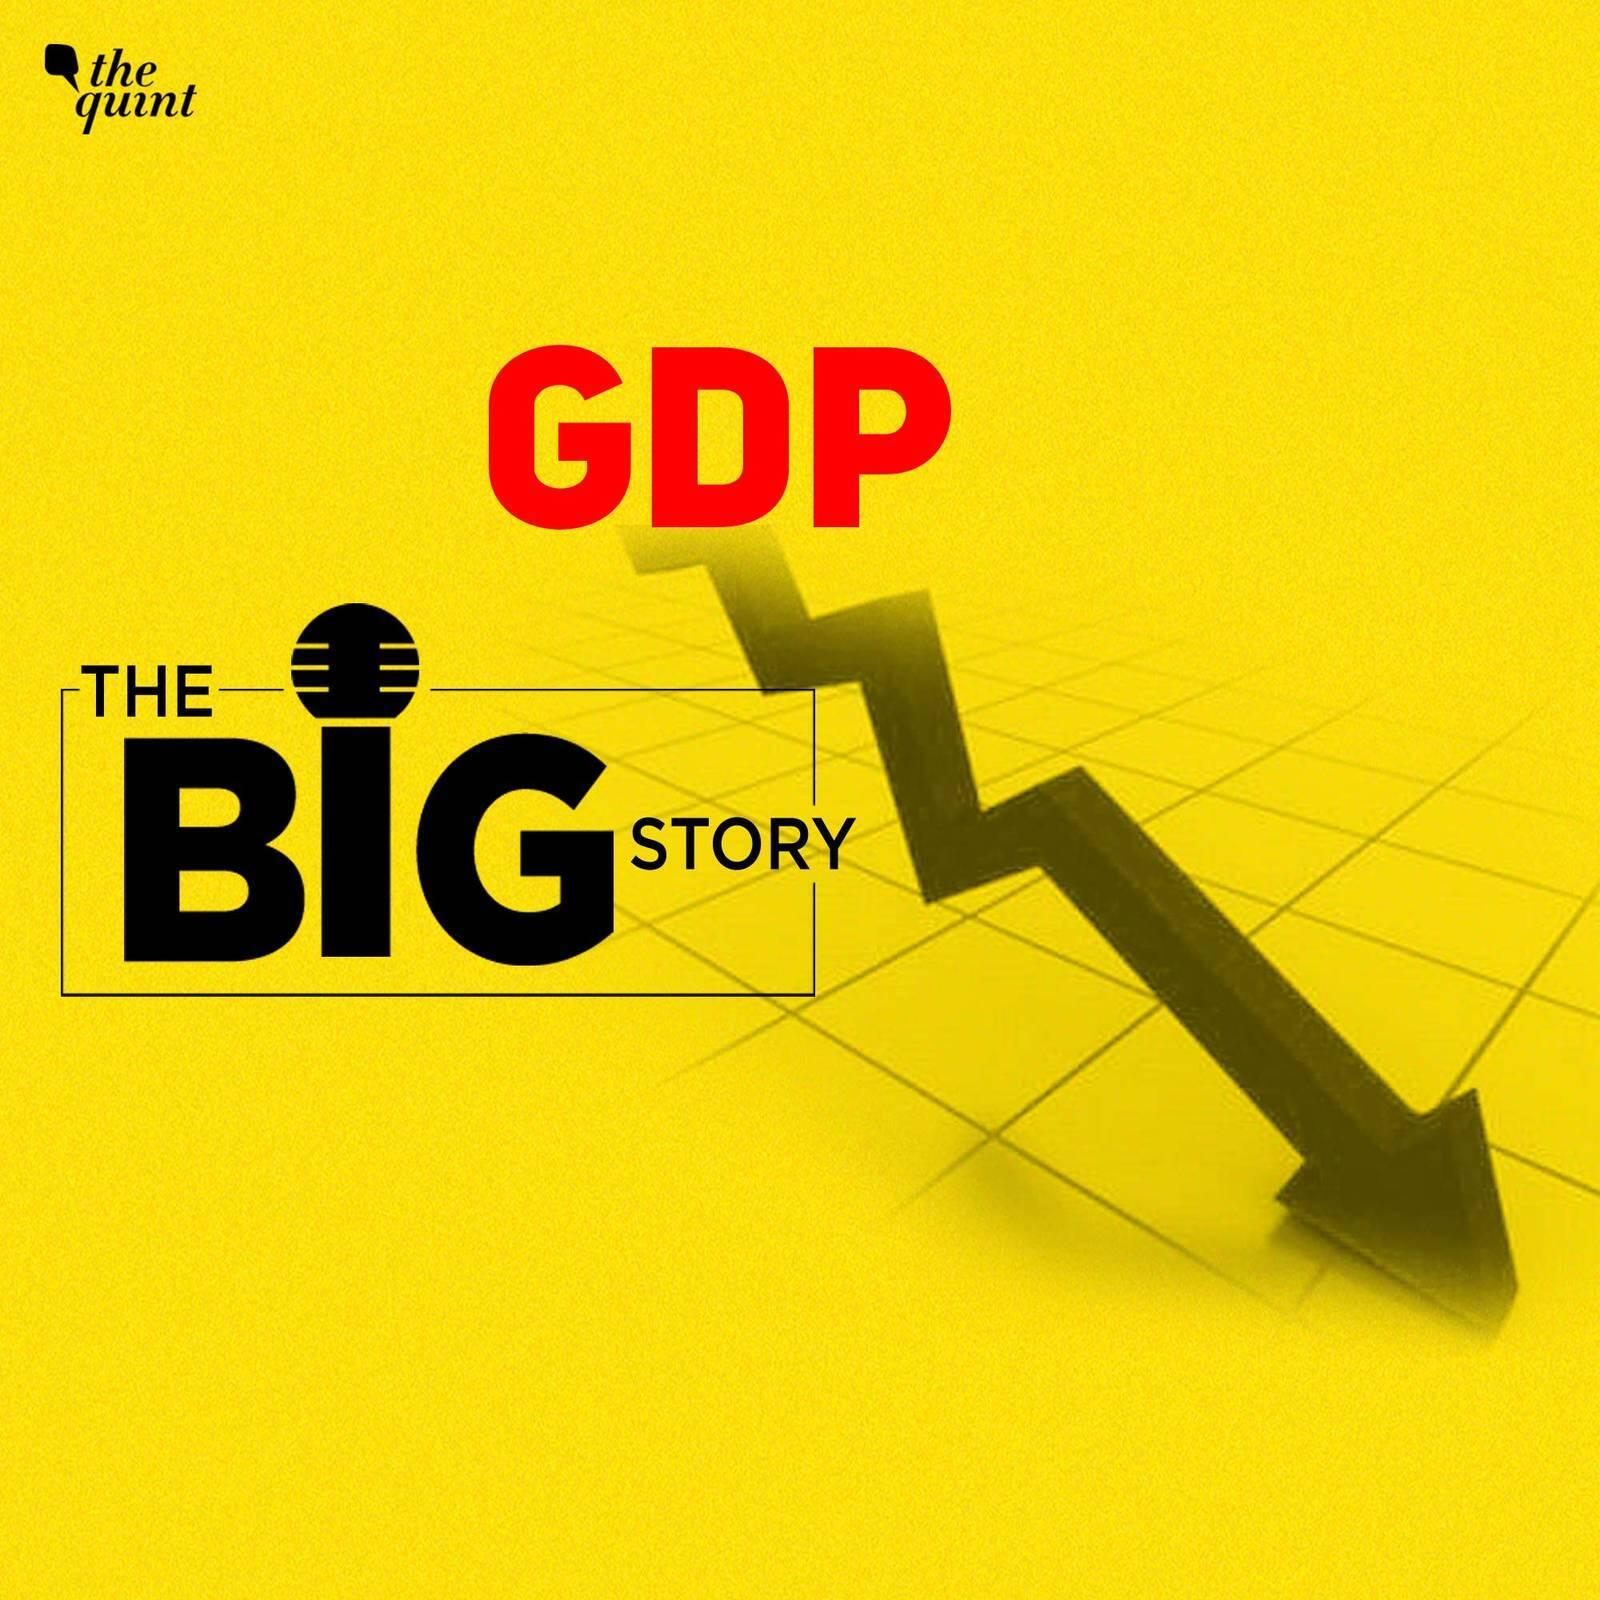 521: India's GDP Slump: A Long and Painful Road to Recovery Ahead